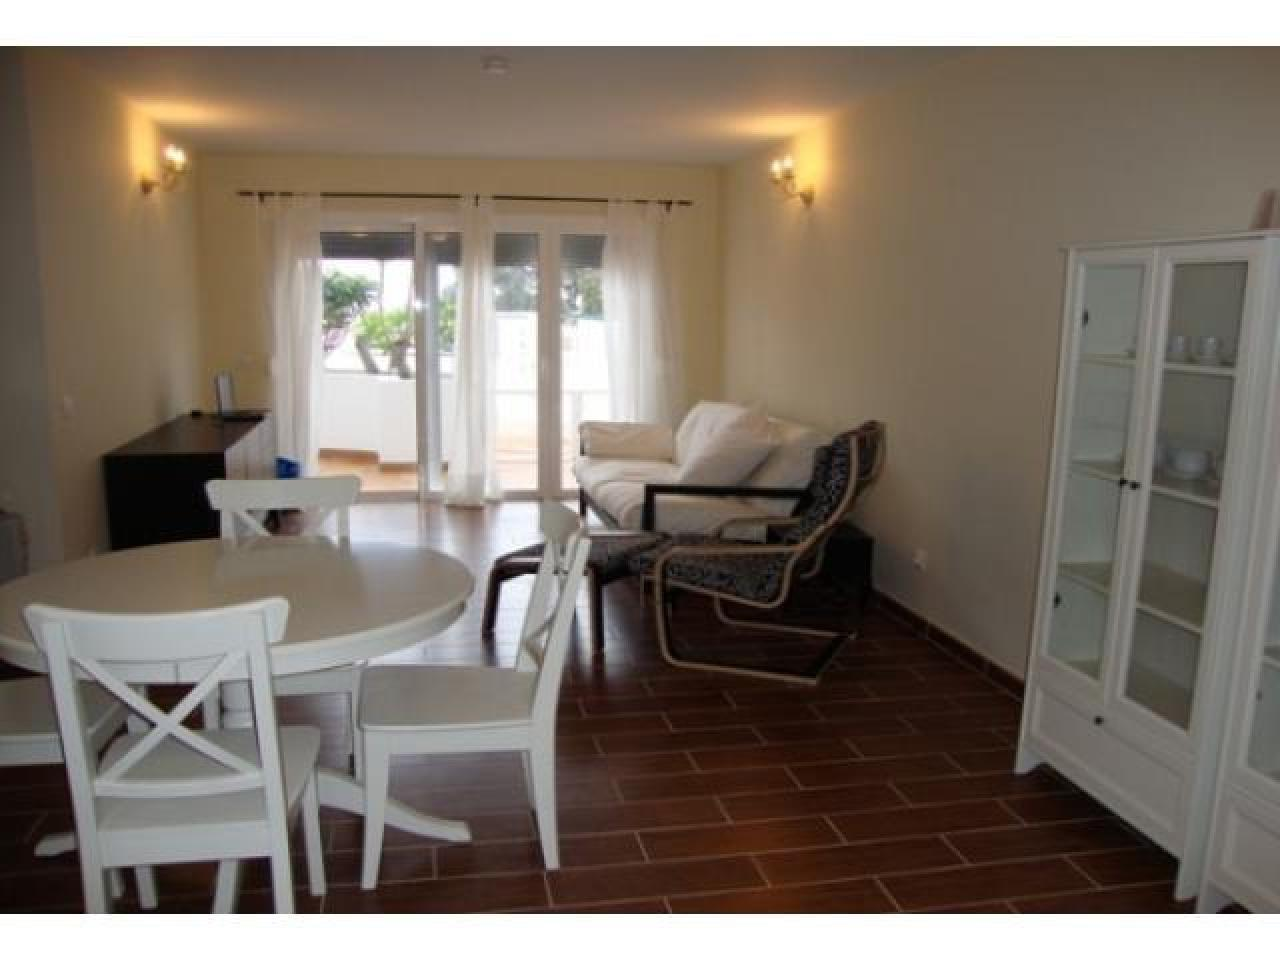 Real estate in Tenerife for sale » #274 - 1